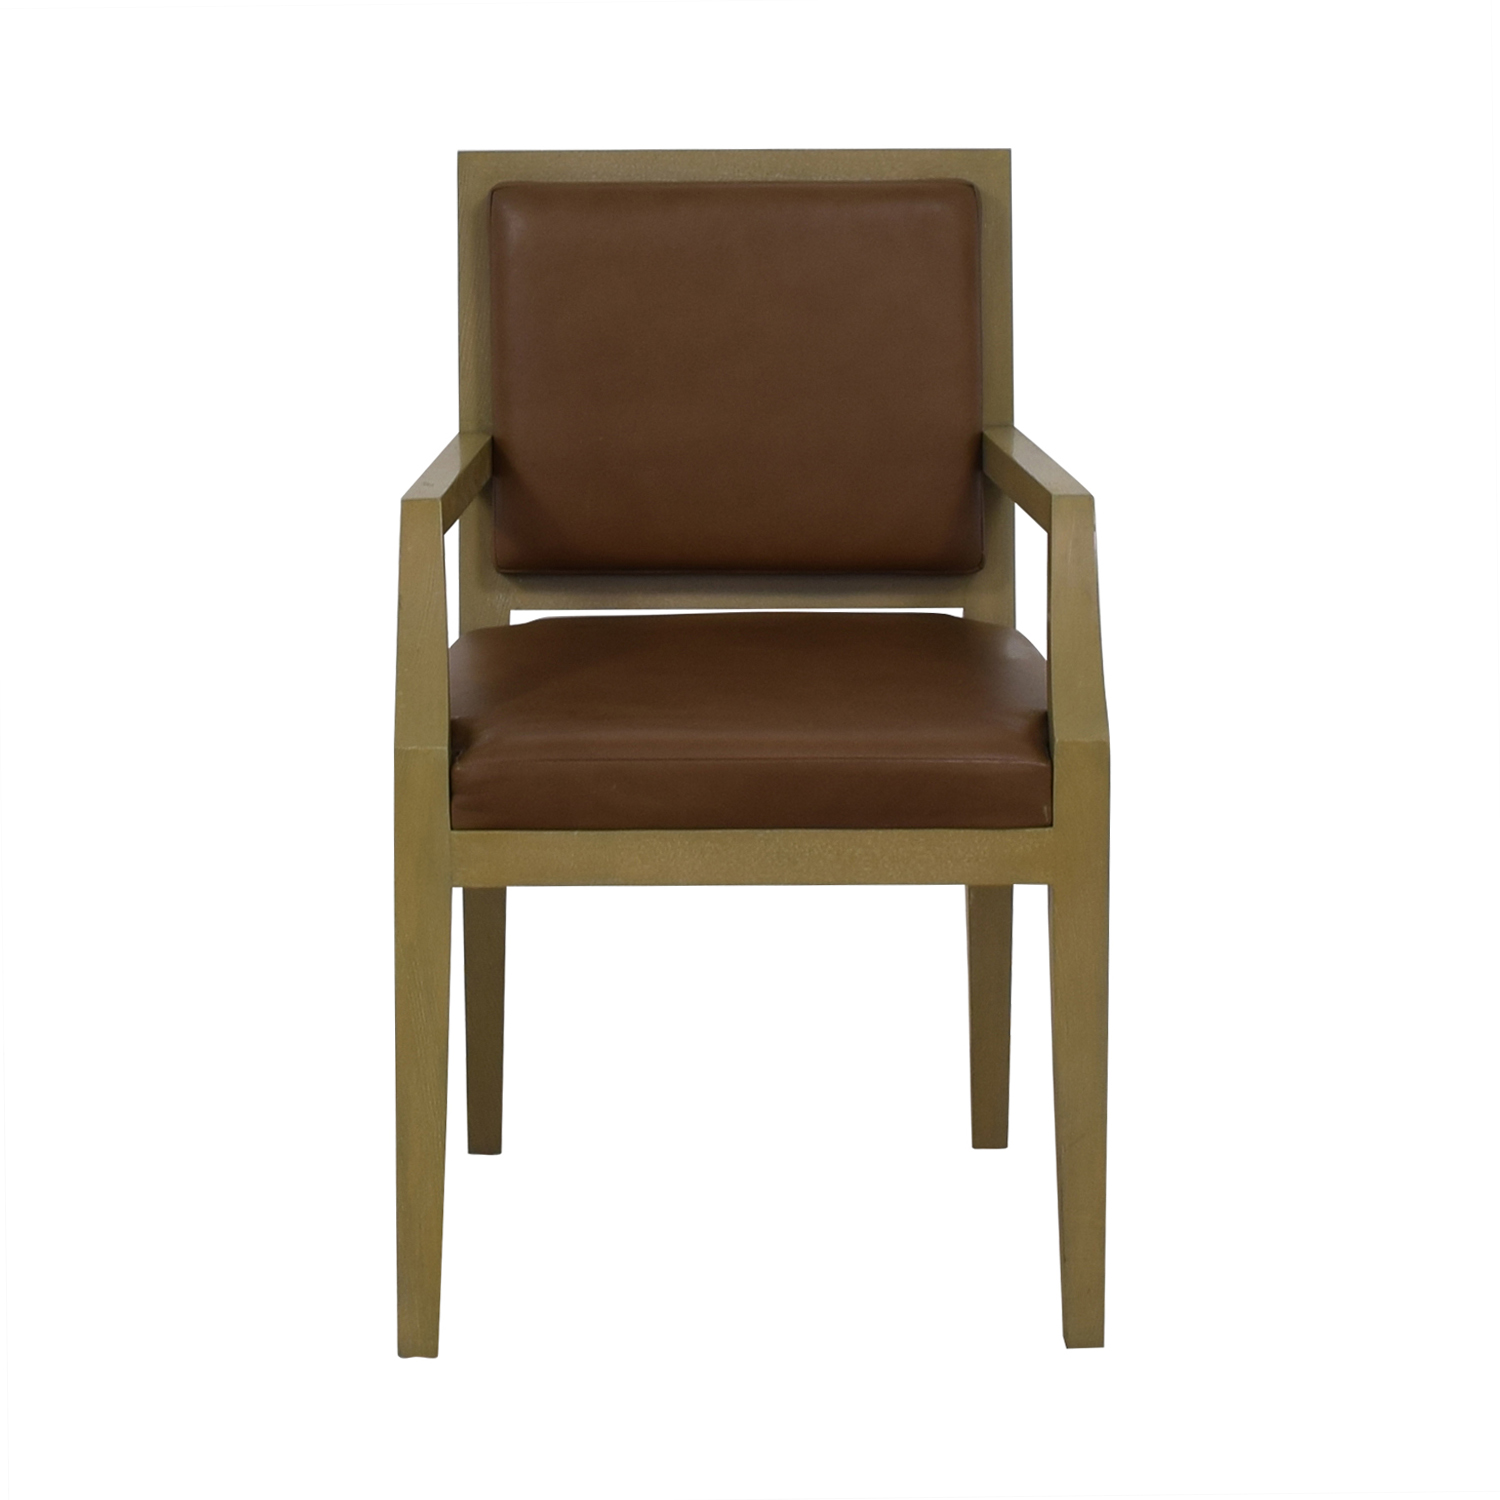 Furniture Masters Furniture Masters Modern Accent Chair coupon